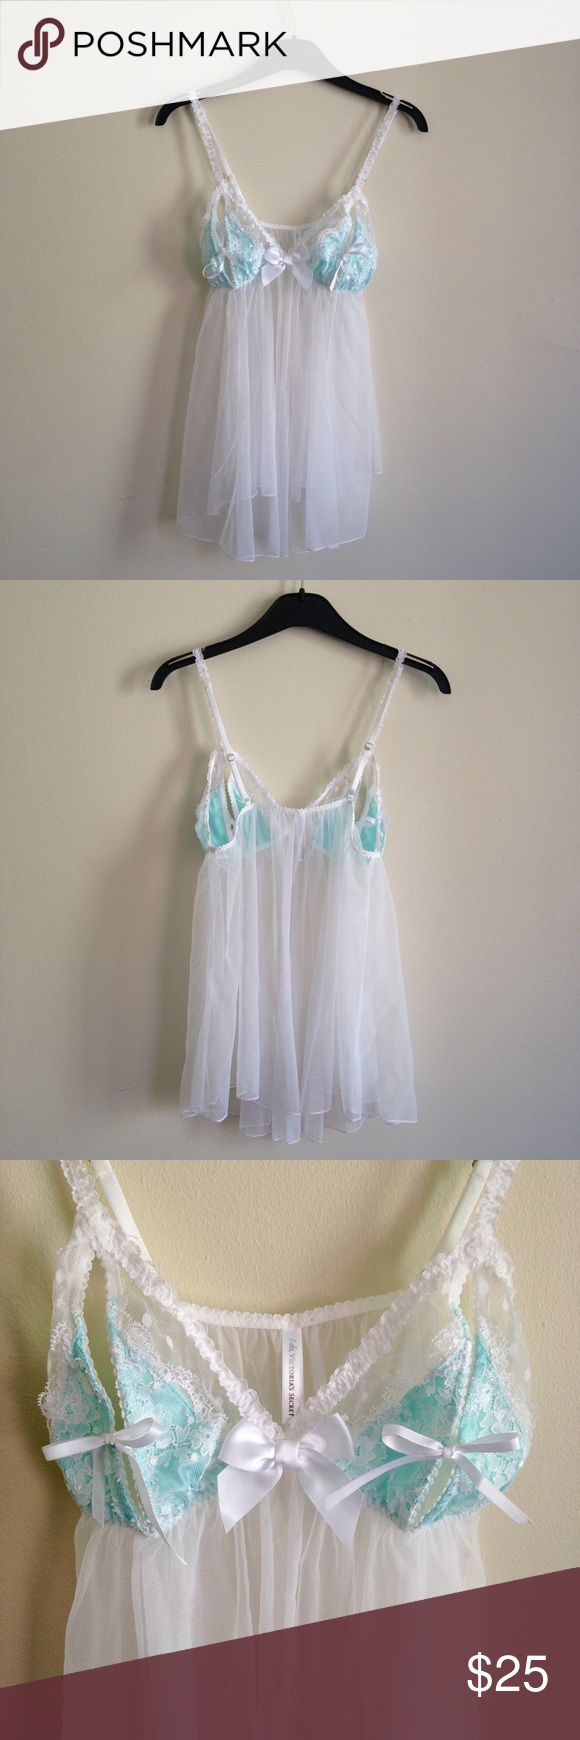 """Victoria's Secret bridal babydoll lingerie Sexy and sweet, this negligee is perfect for your wedding night or honeymoon. Blue and bow details. From the Victoria's Secret """"I do"""" collection. Excellent condition, no stains, tears or other flaws. Victoria's Secret Intimates & Sleepwear Chemises & Slips"""